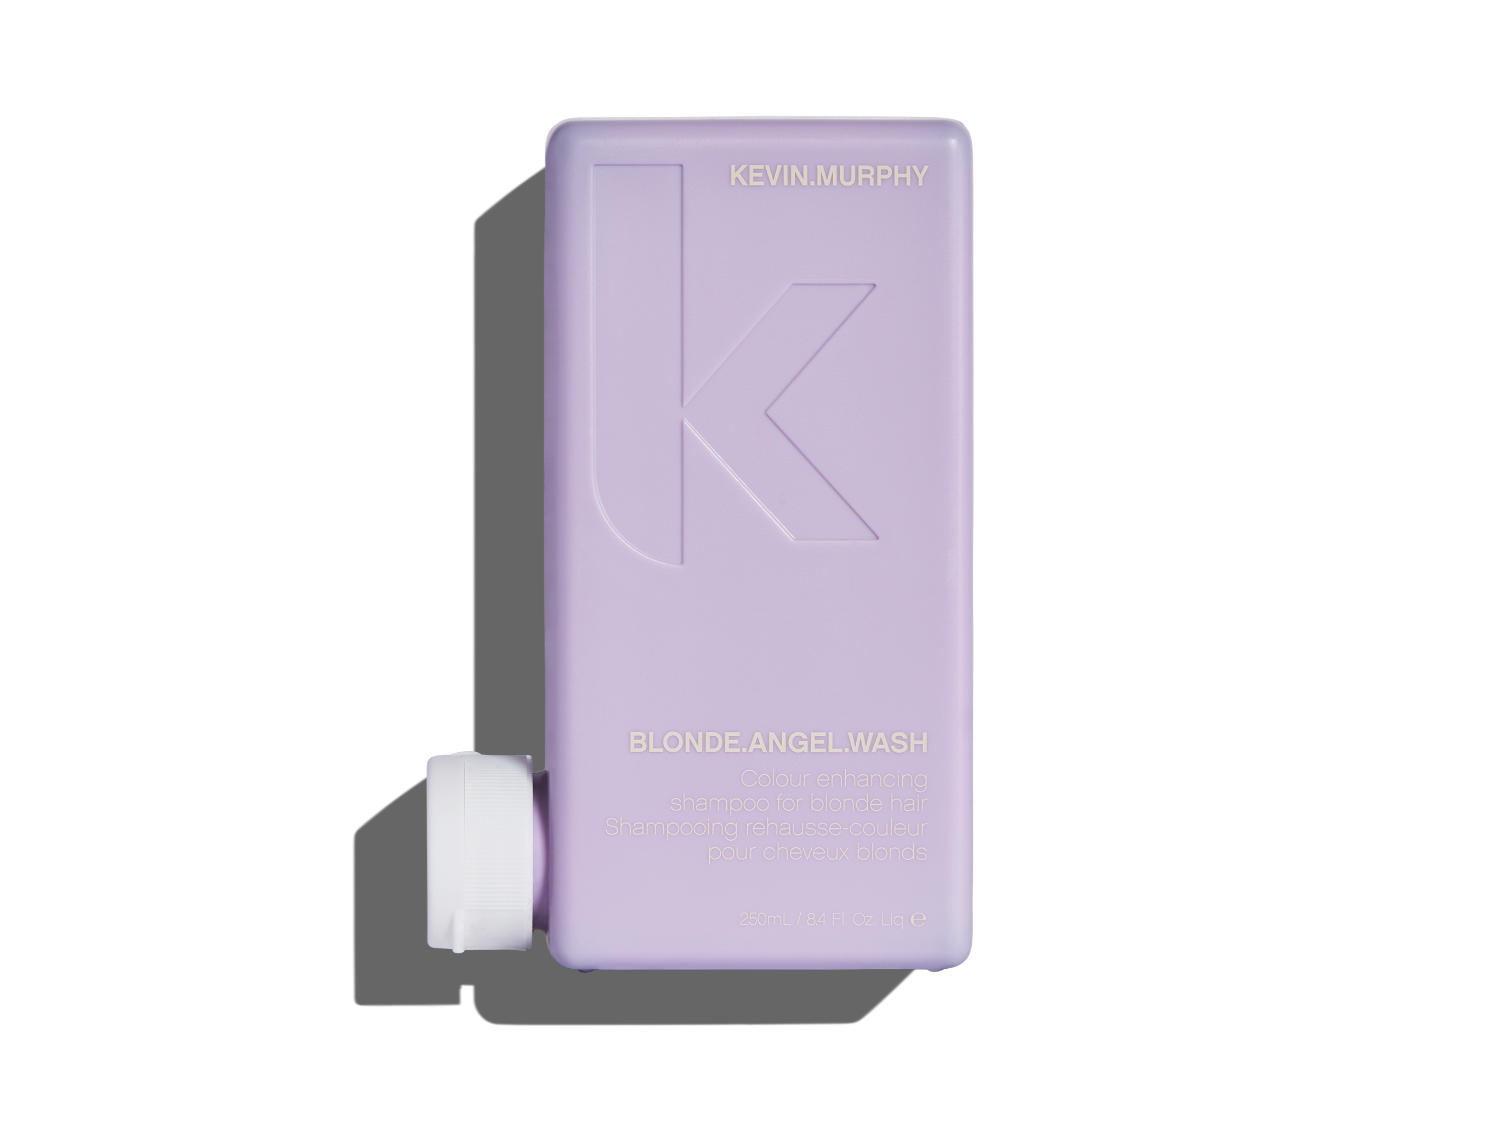 Arma Beauty - Kevin Murphy - BLONDE.ANGEL.WASH